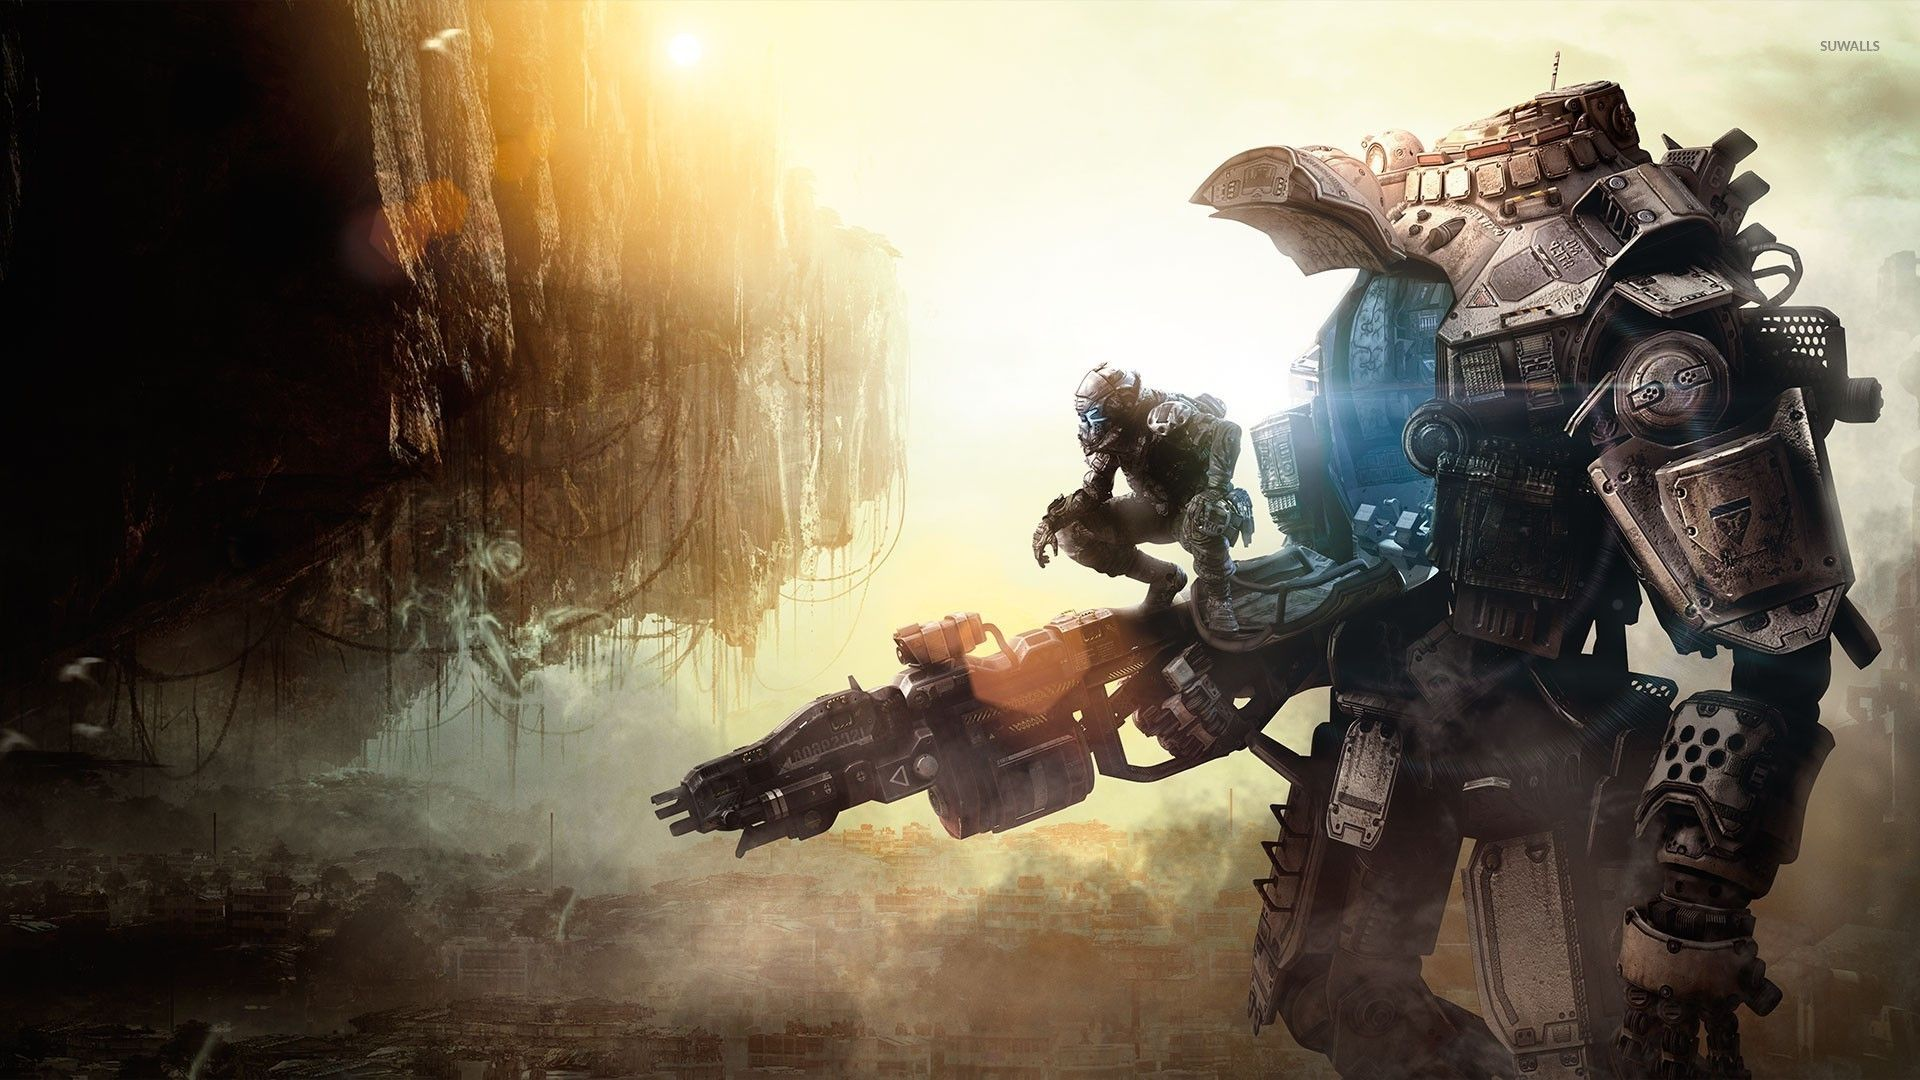 Titanfall Wallpapers High Definition In 2020 Titanfall Titanfall Game Gaming Wallpapers